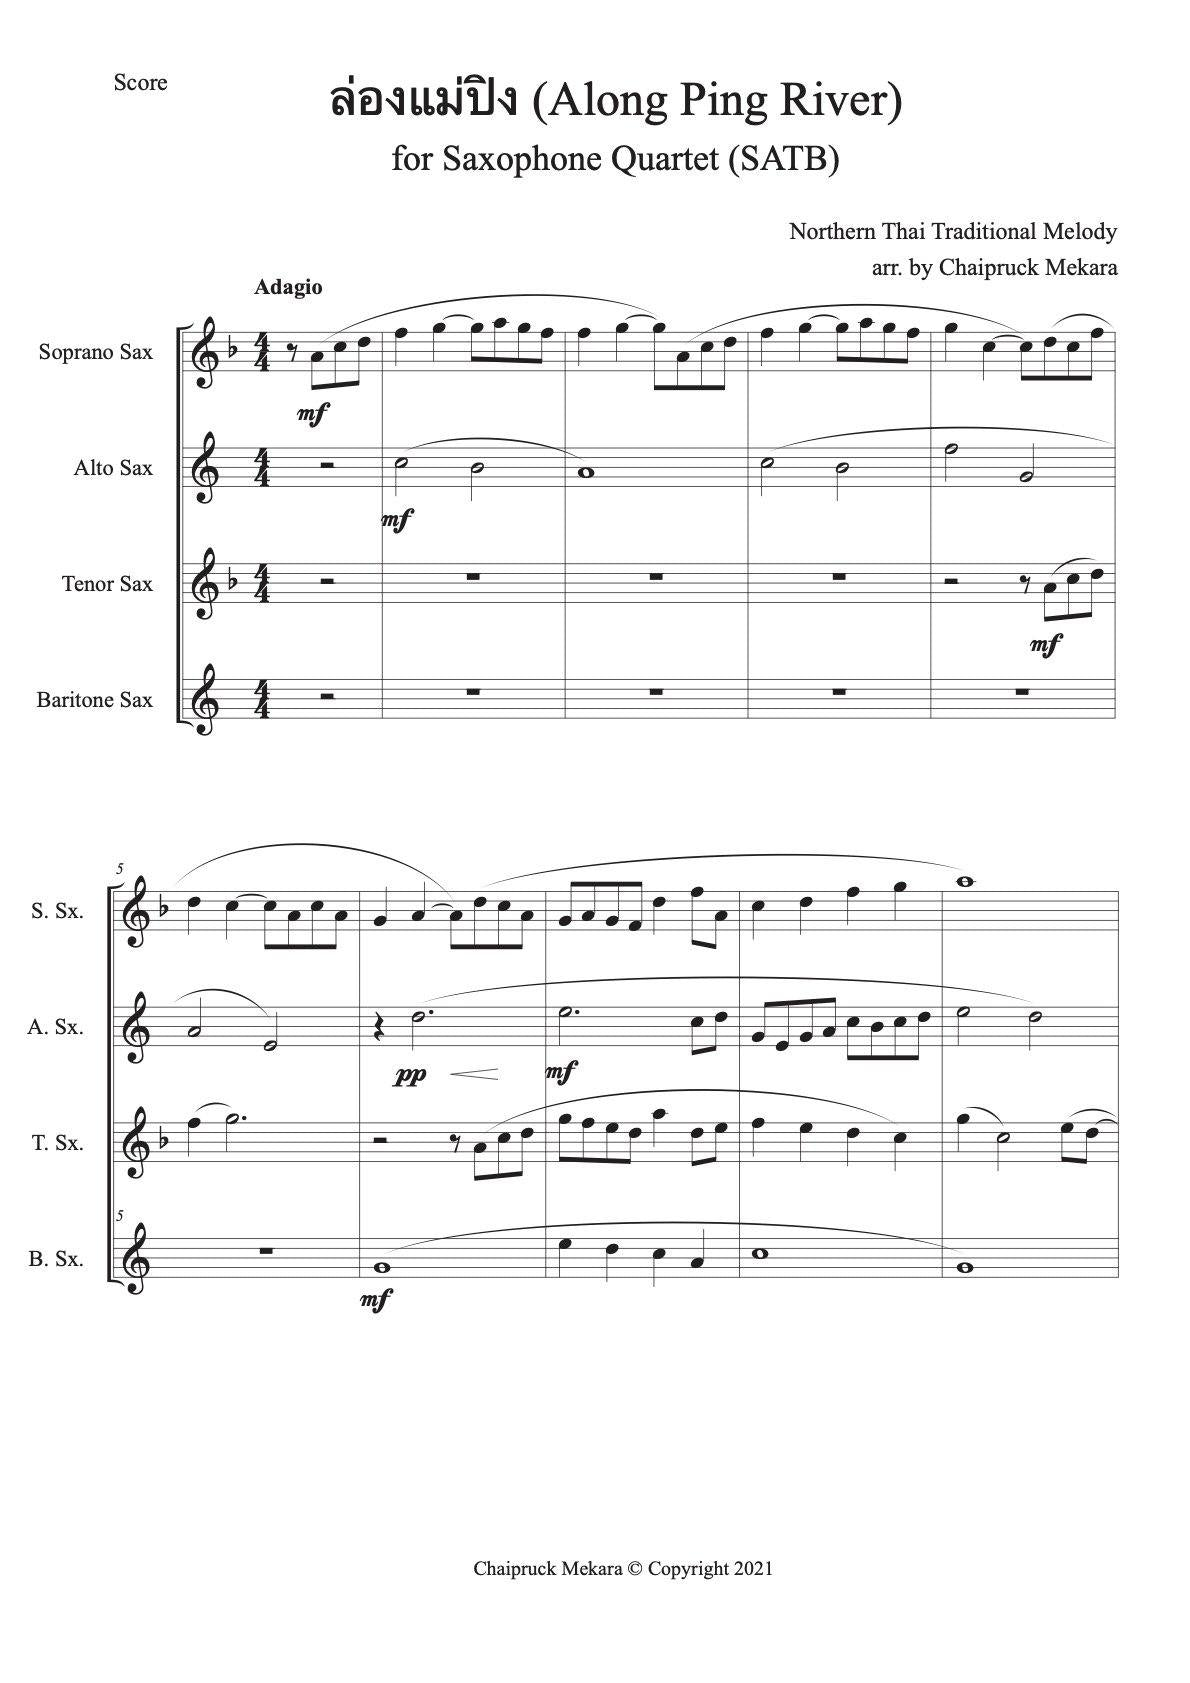 Along Ping River (ล่องแม่ปิง) for Saxophone Quartet- SATB (Score+Parts) - ChaipruckMekara